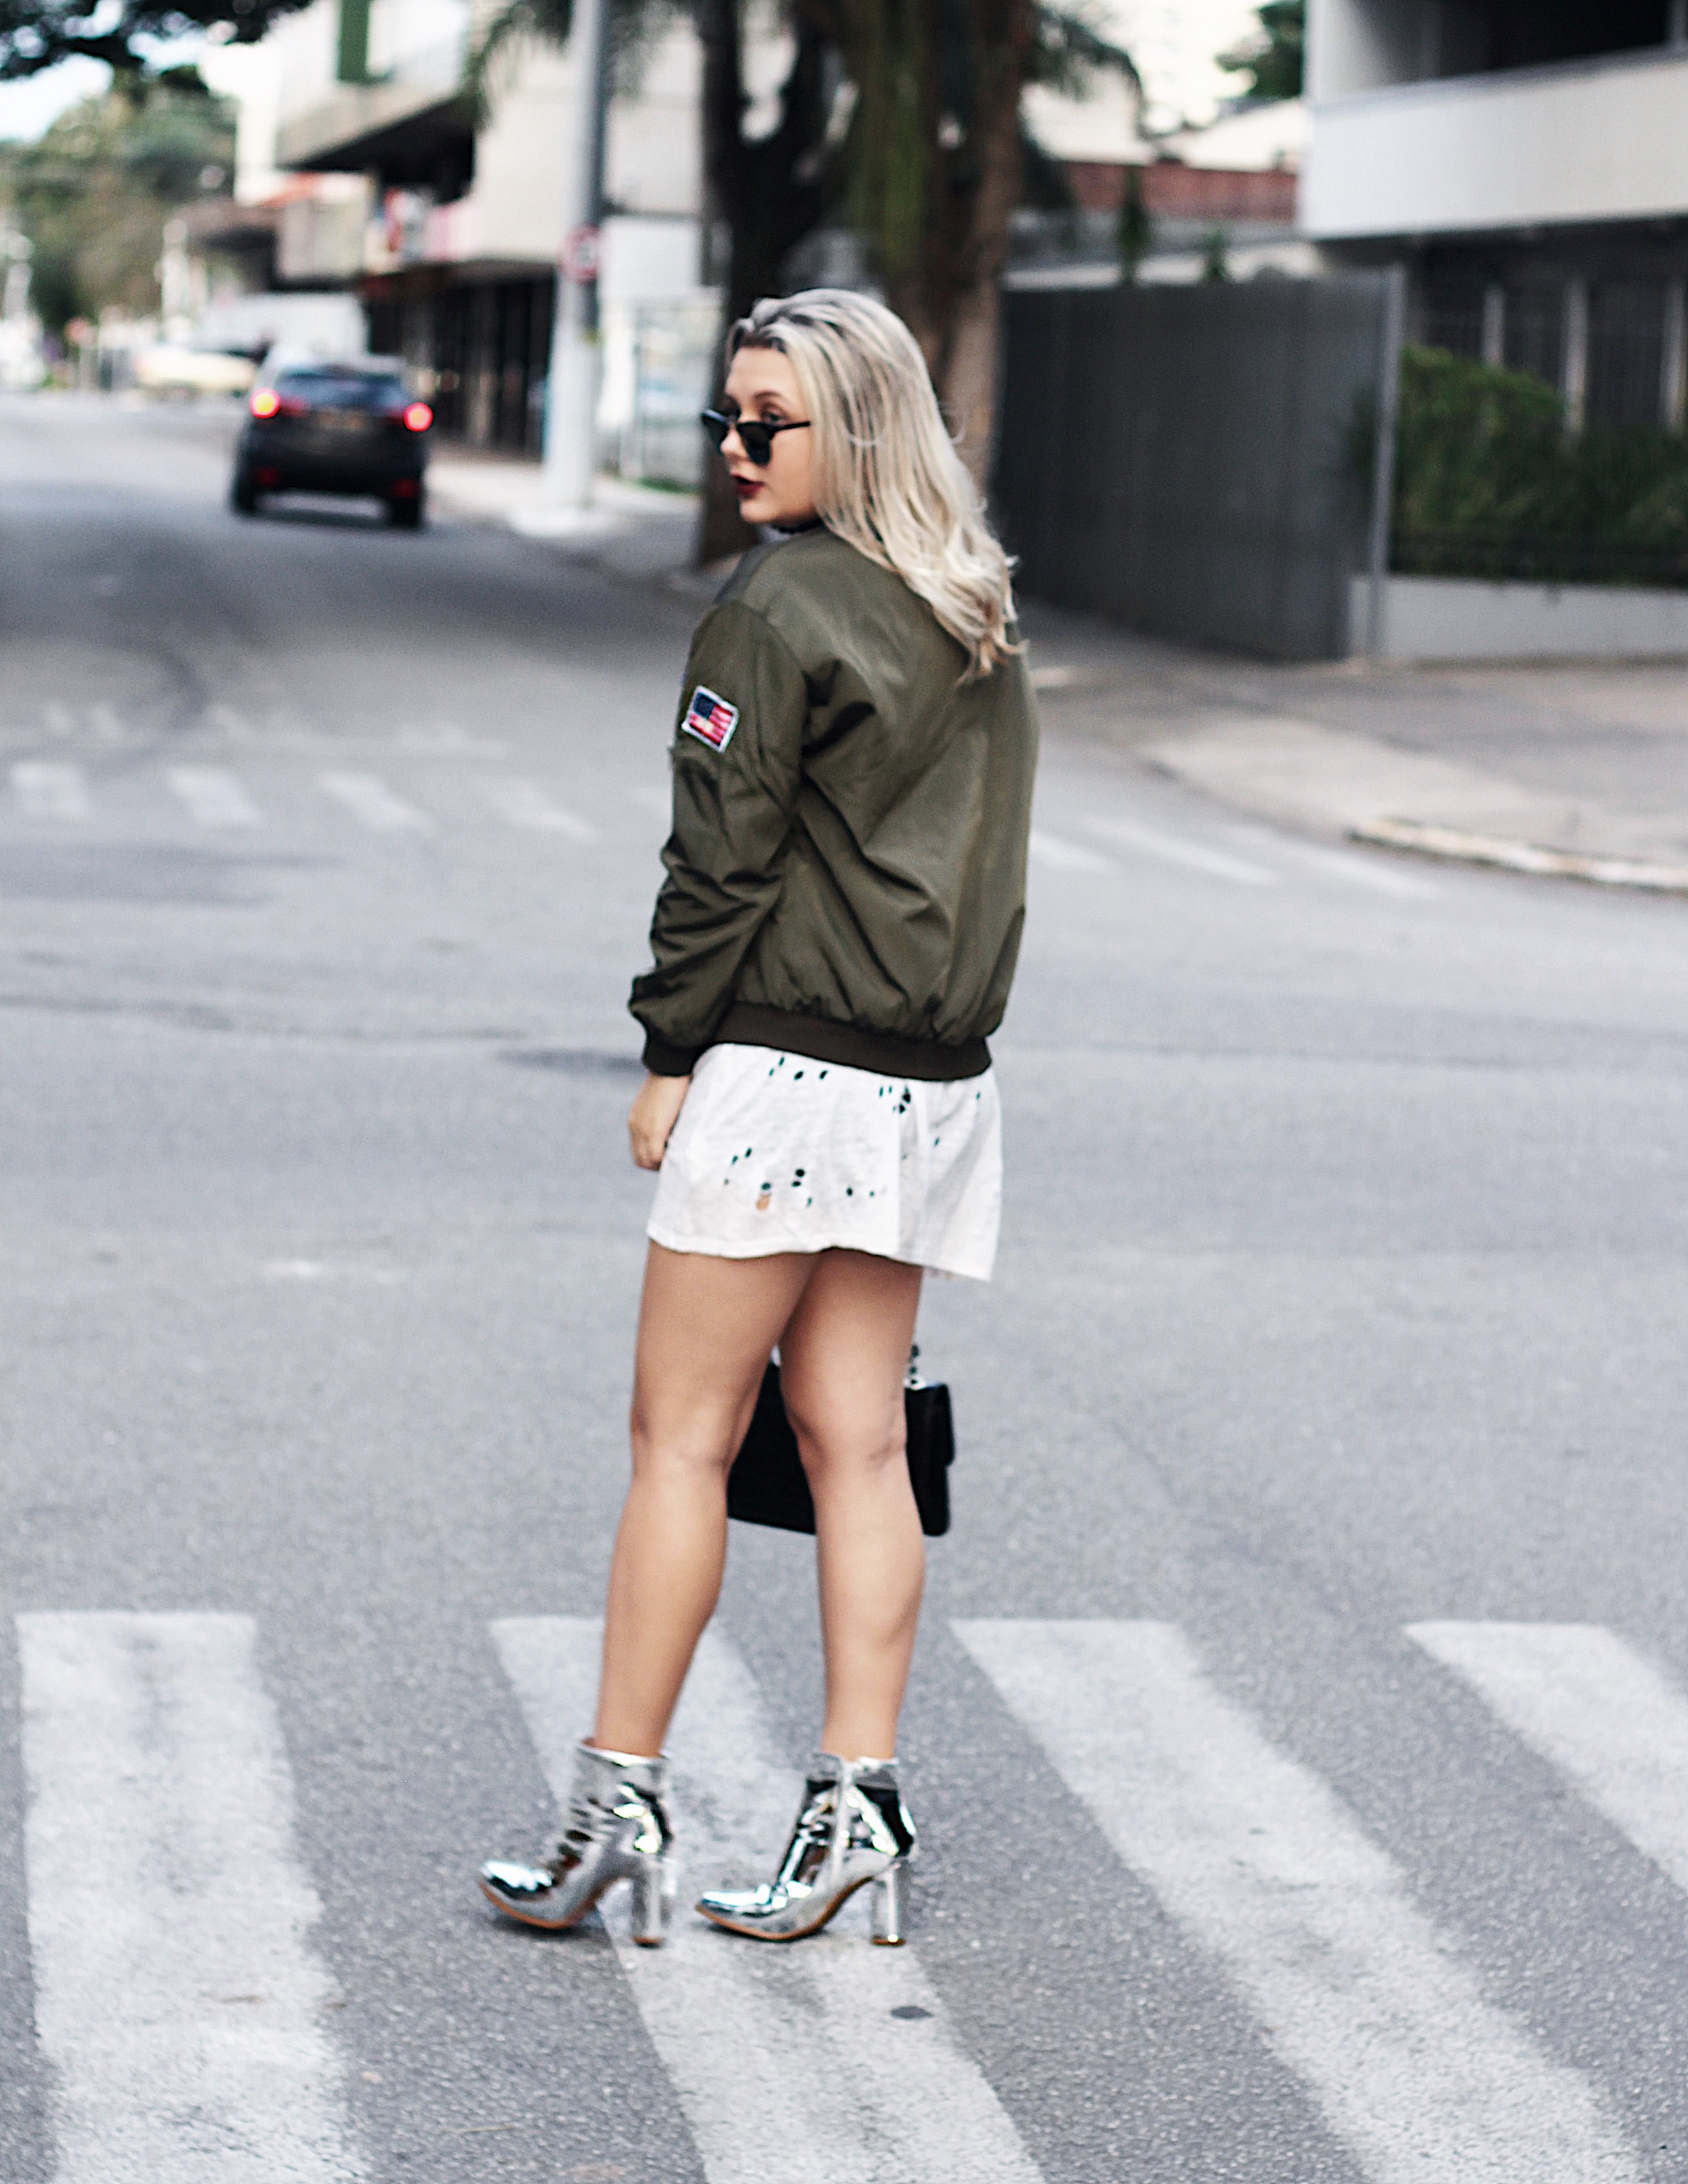 look 2 formal classico caroline hernandes romwe compre na china  jaqueta militar look do dia 5